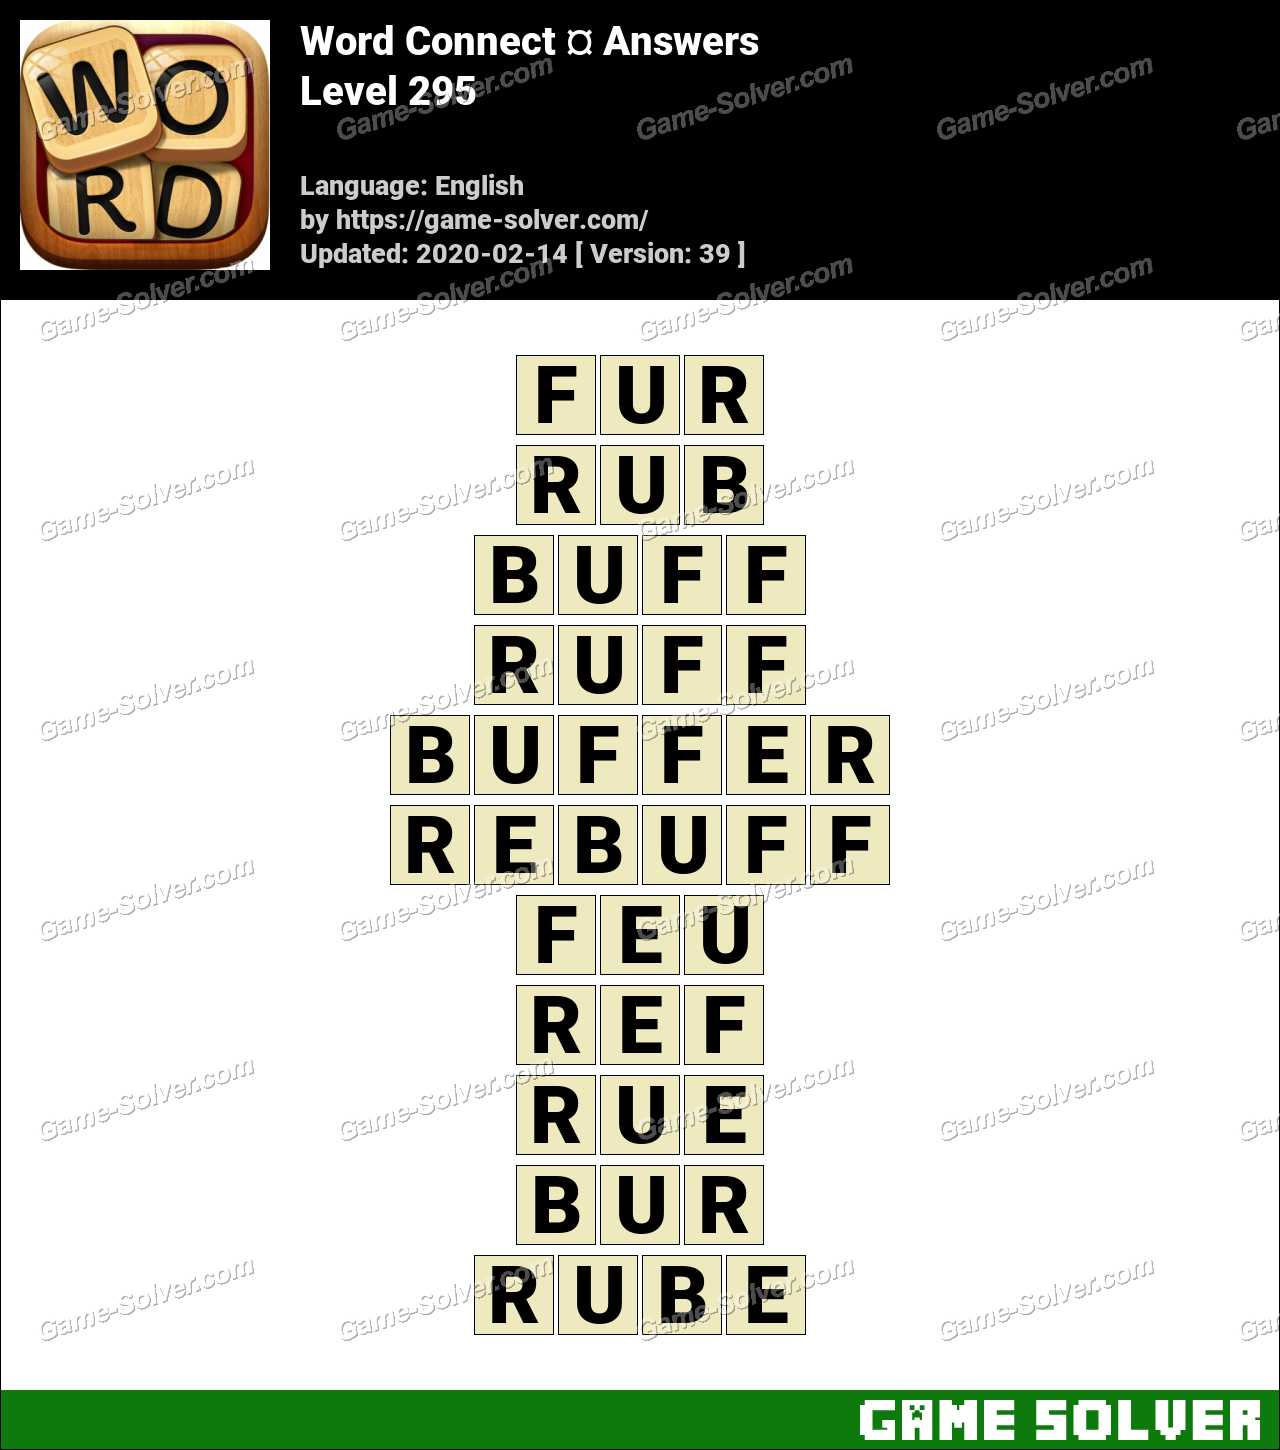 Word Connect Level 295 Answers